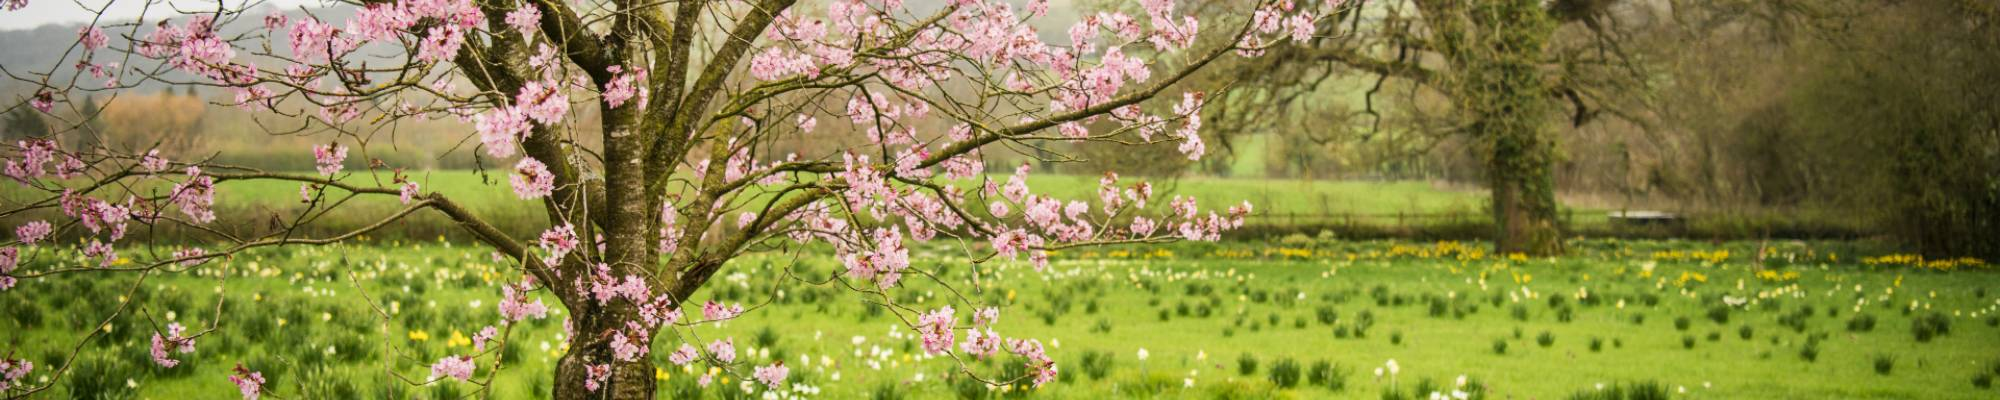 Pink Blossom for a spring garden